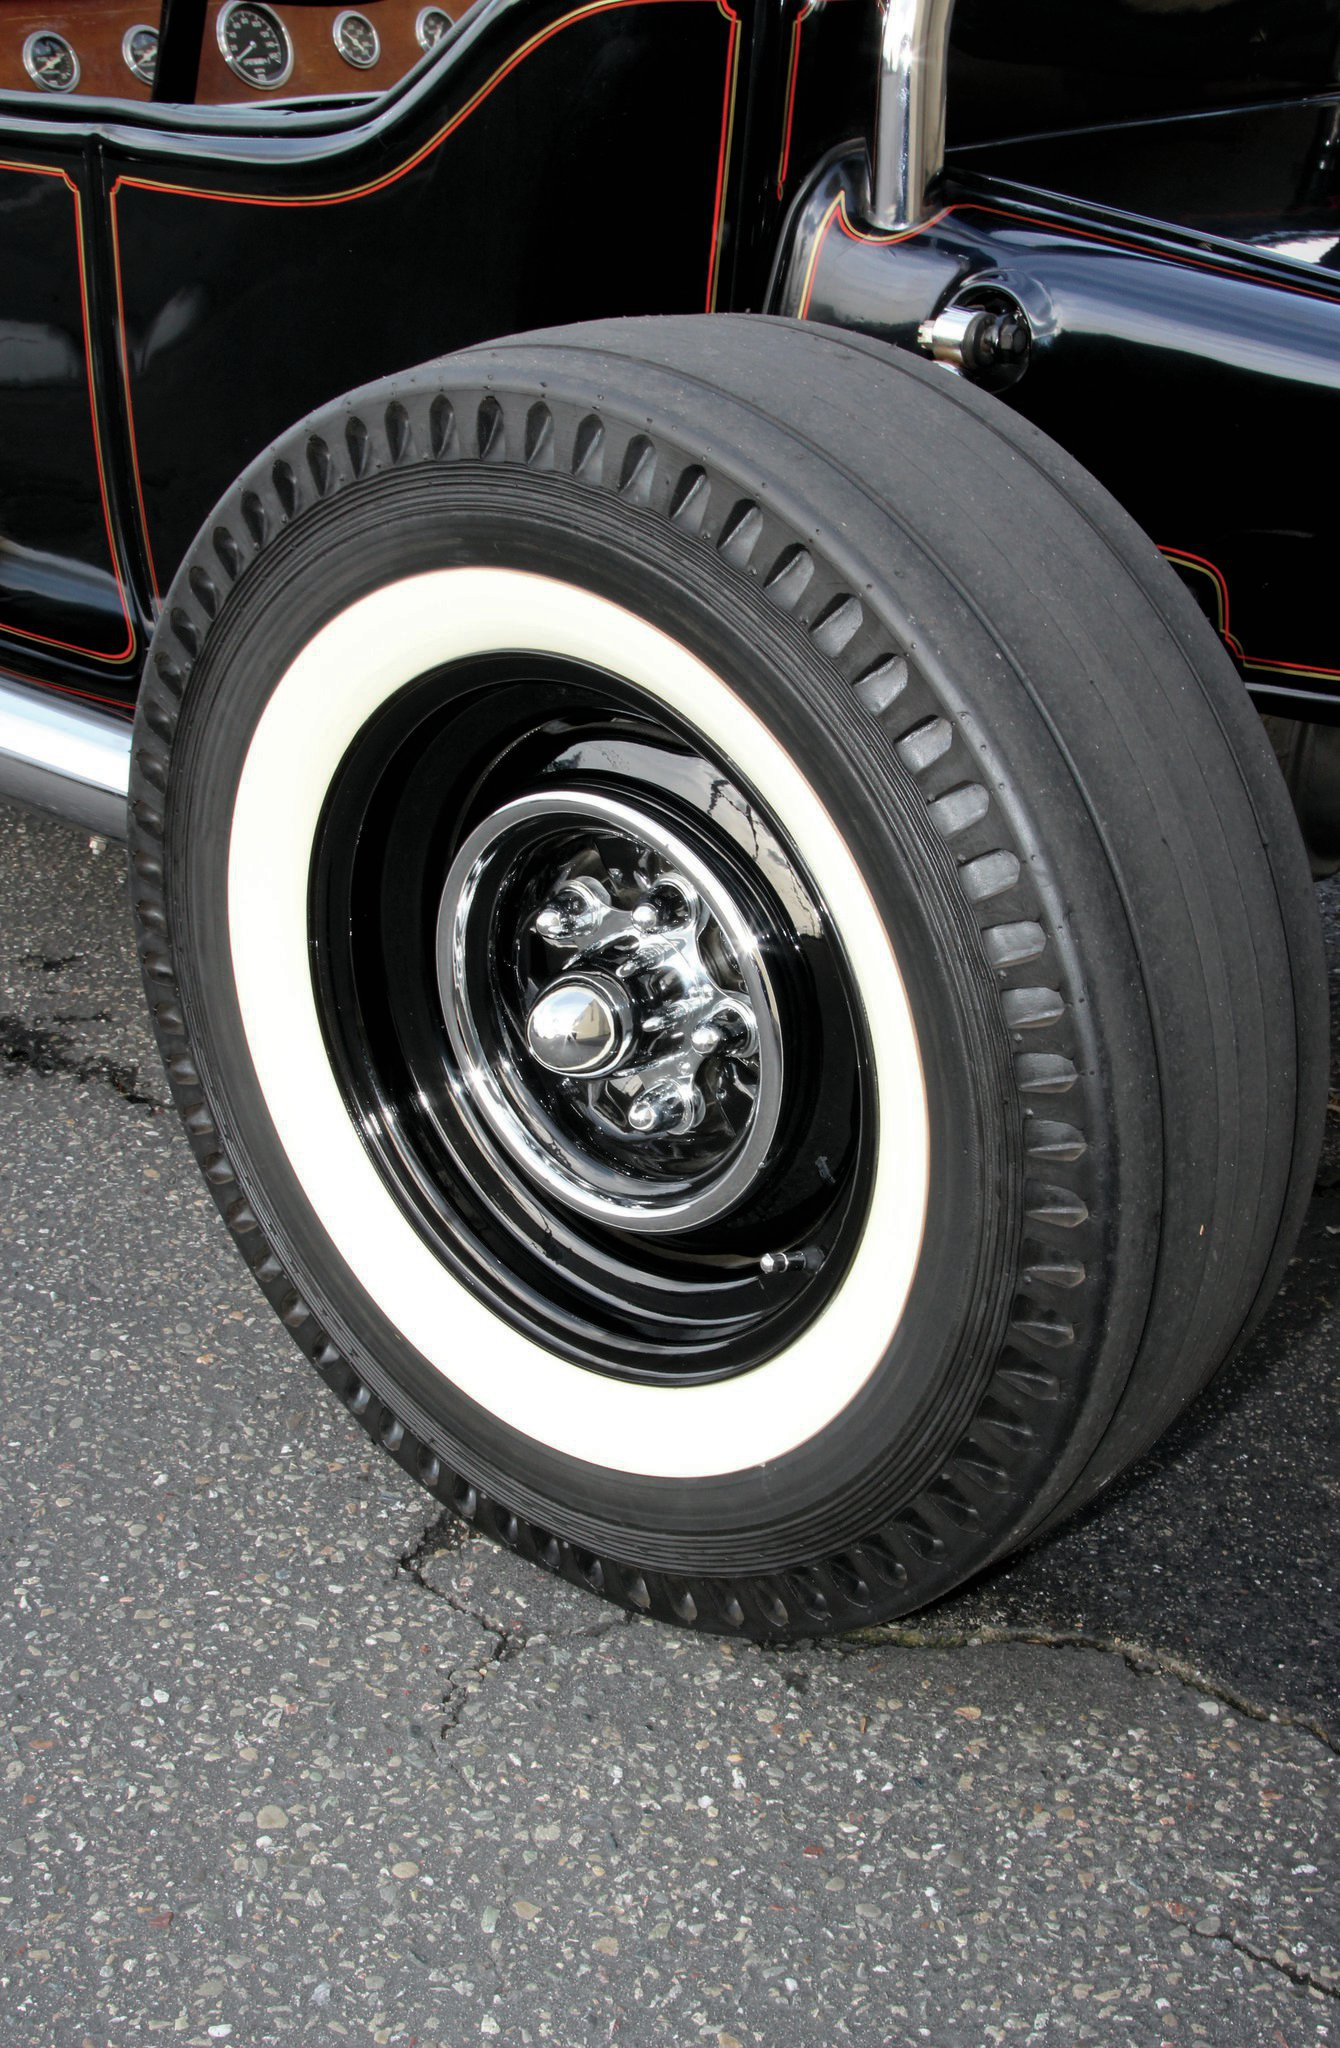 """When Marcus got the T it had slotted aluminum wheels that John put on in the '80s. Marcus switched them out for 15-inch Ford steel wheels, which have Towel City cheater slicks on the rear and Firestone Deluxe Champions on the front. """"They just fit better with the looks of the car,"""" says Marcus."""